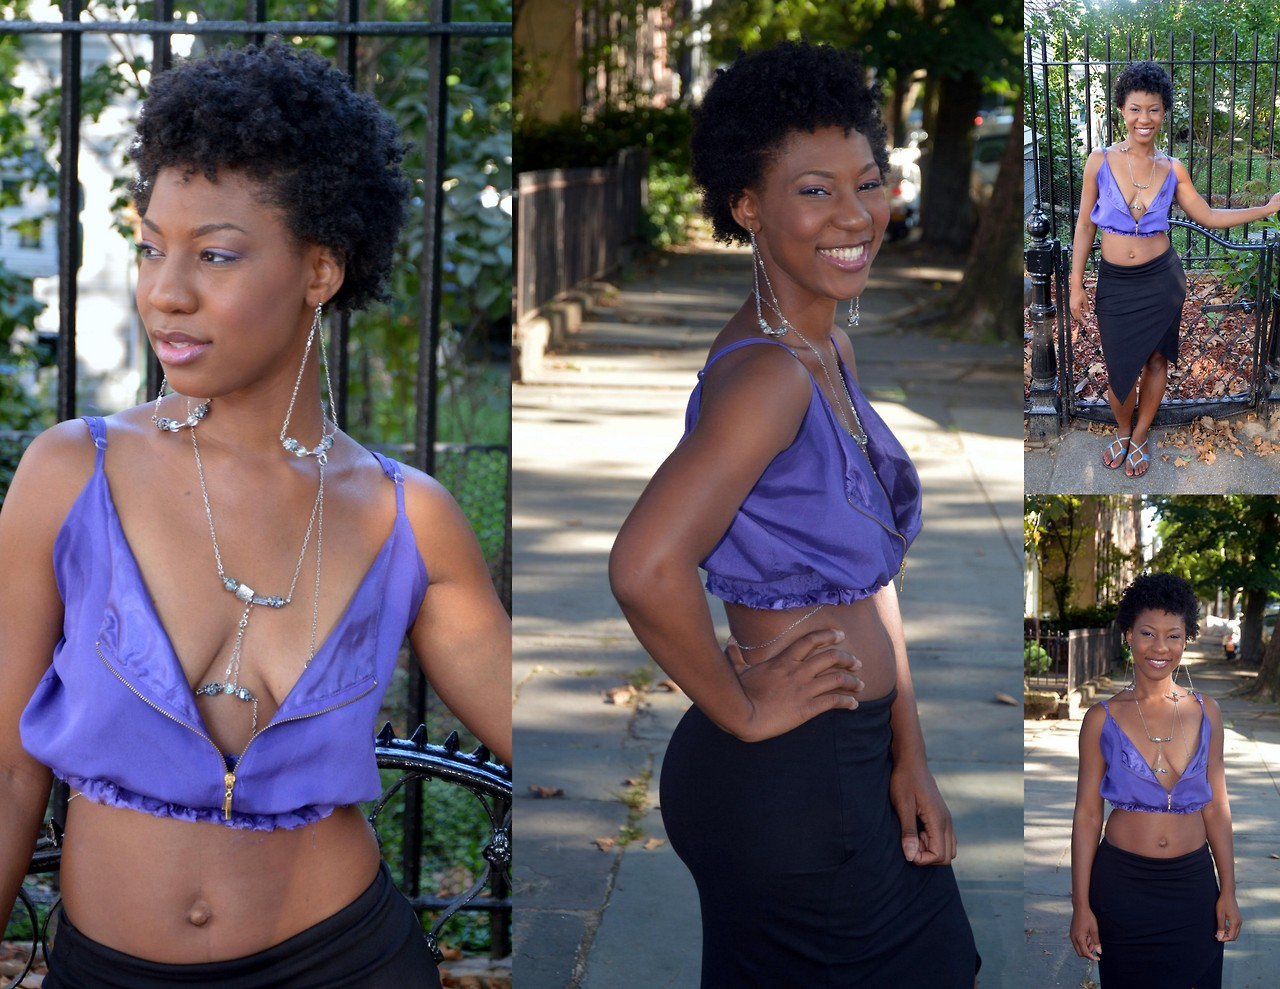 Designer Rebekah Christie wearing jewelry from The Butterfly Link Collection. Photos by Delilah Williams.